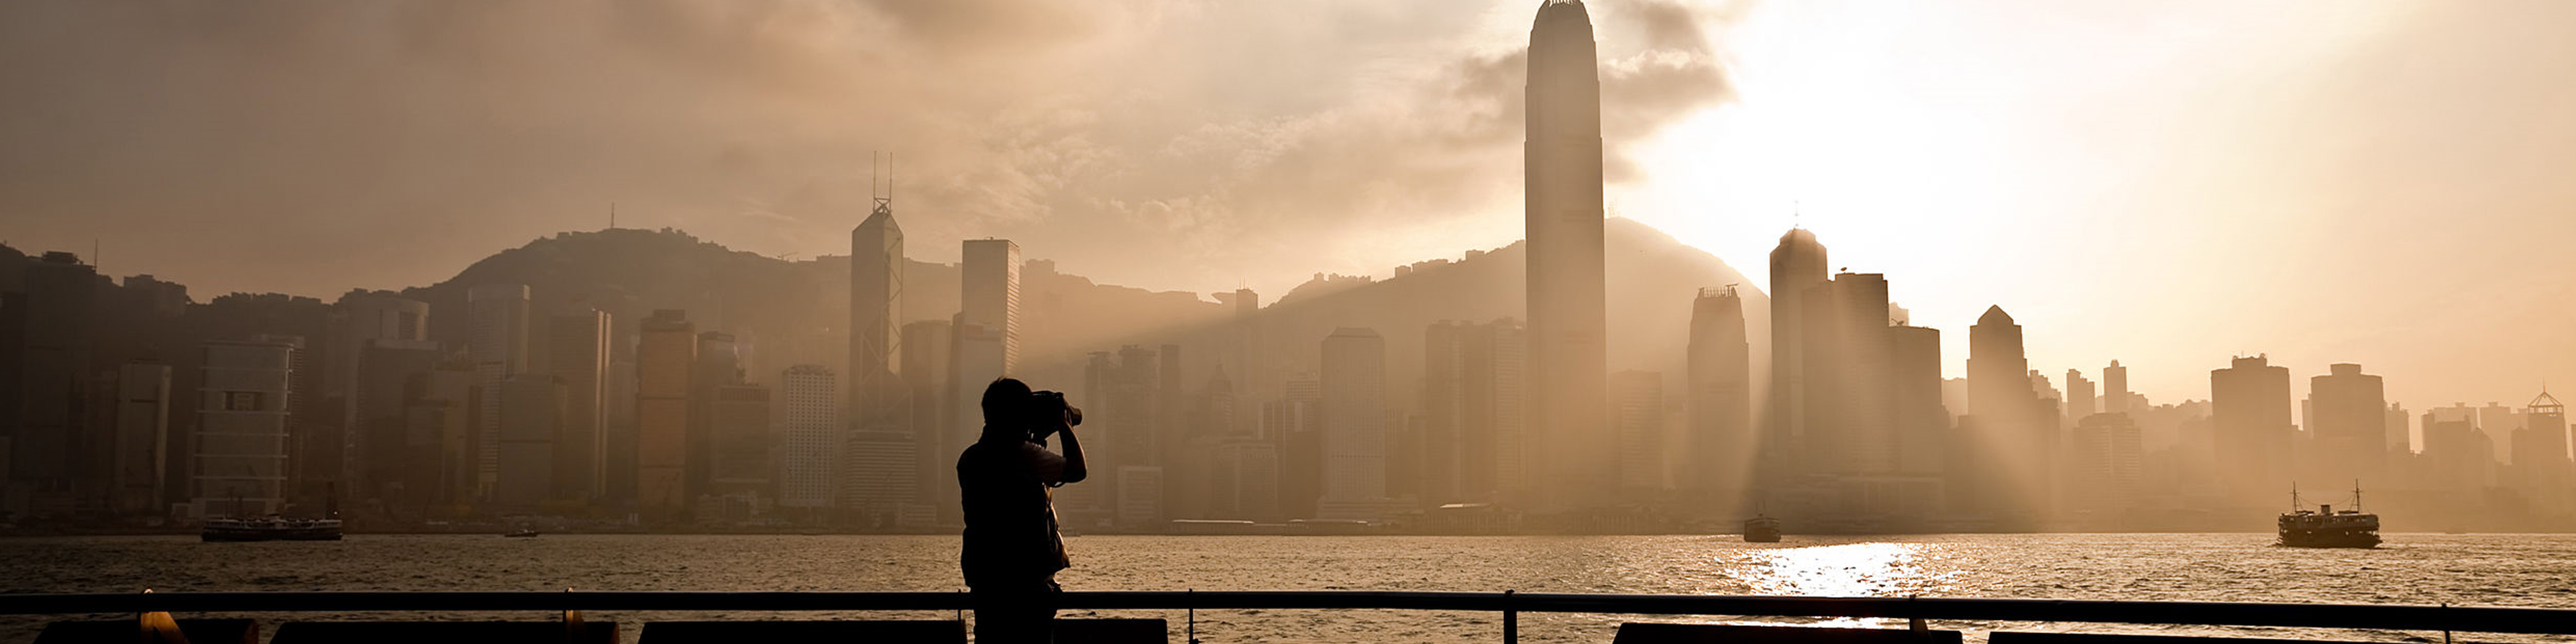 Keeping up with an evolving marcoeconomic outlook and risk landscape in APAC